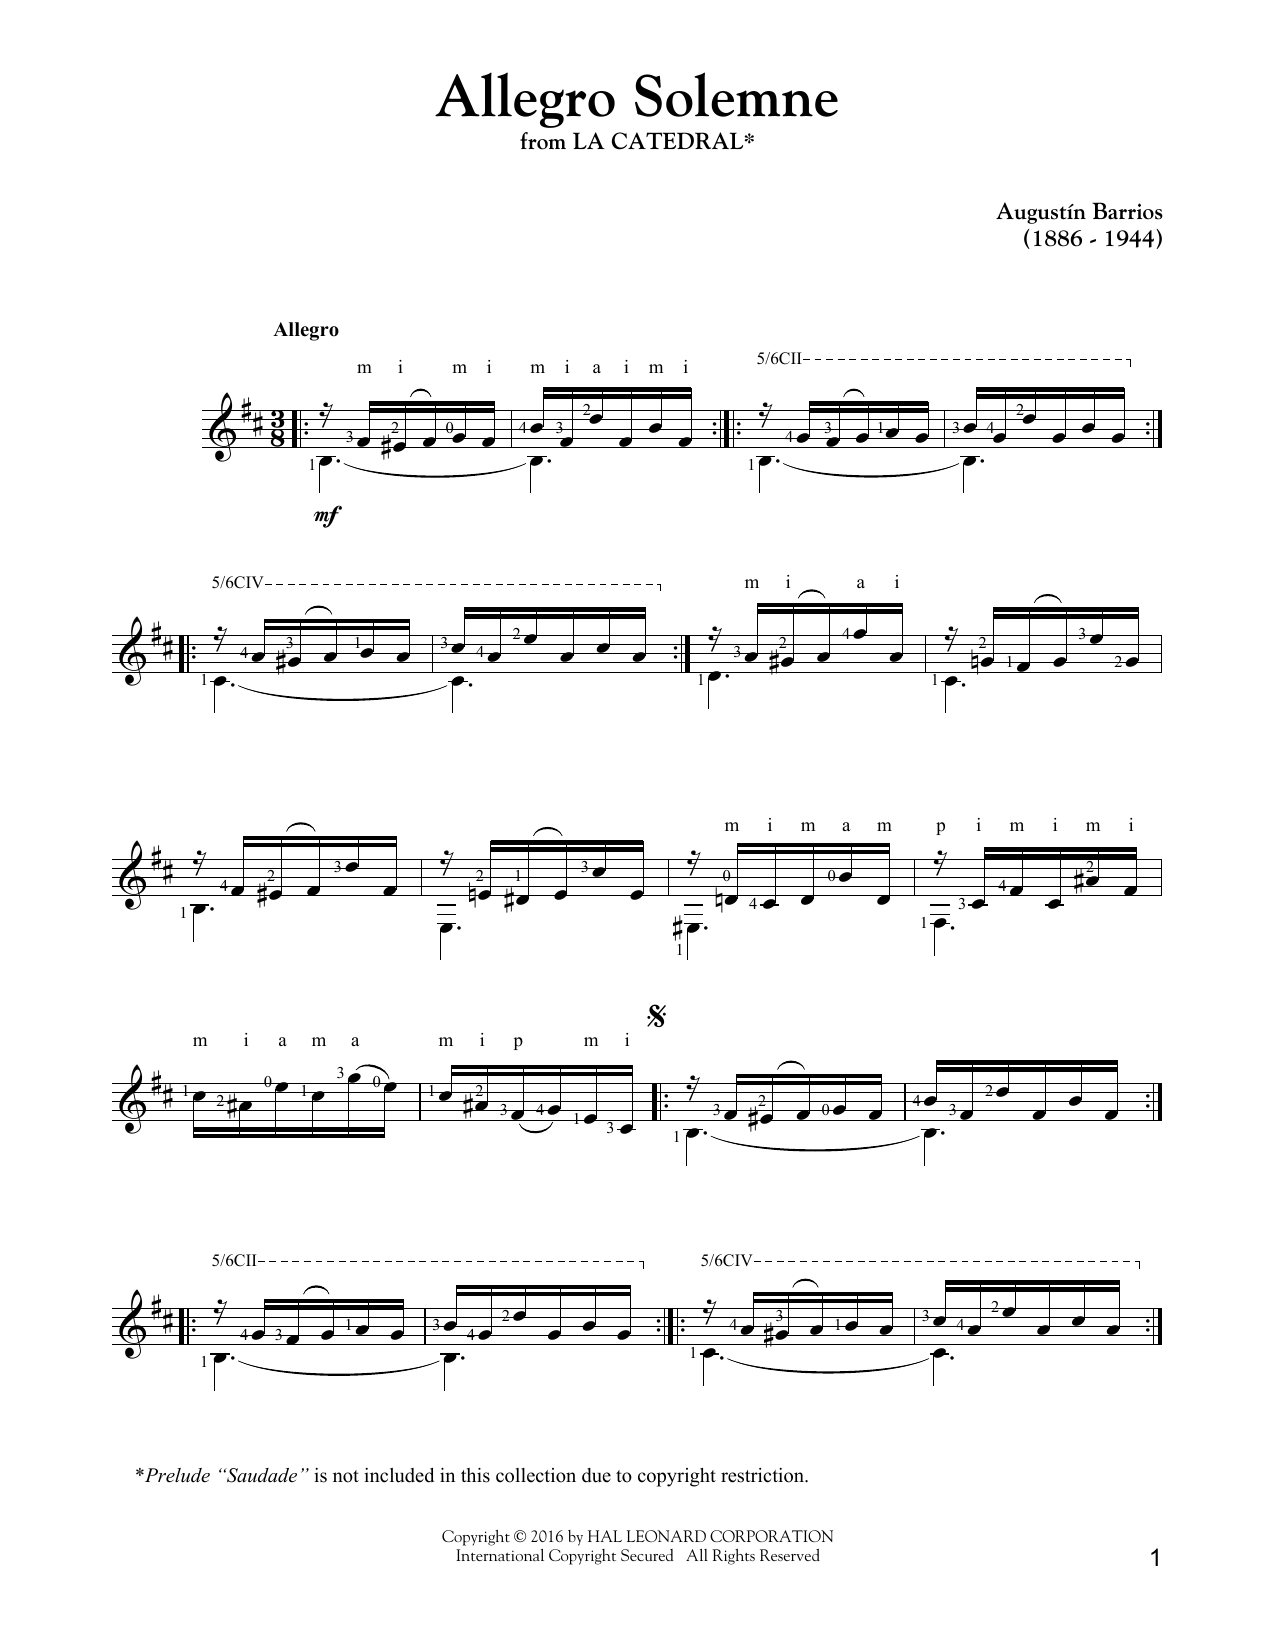 Allegro Solemne Sheet Music